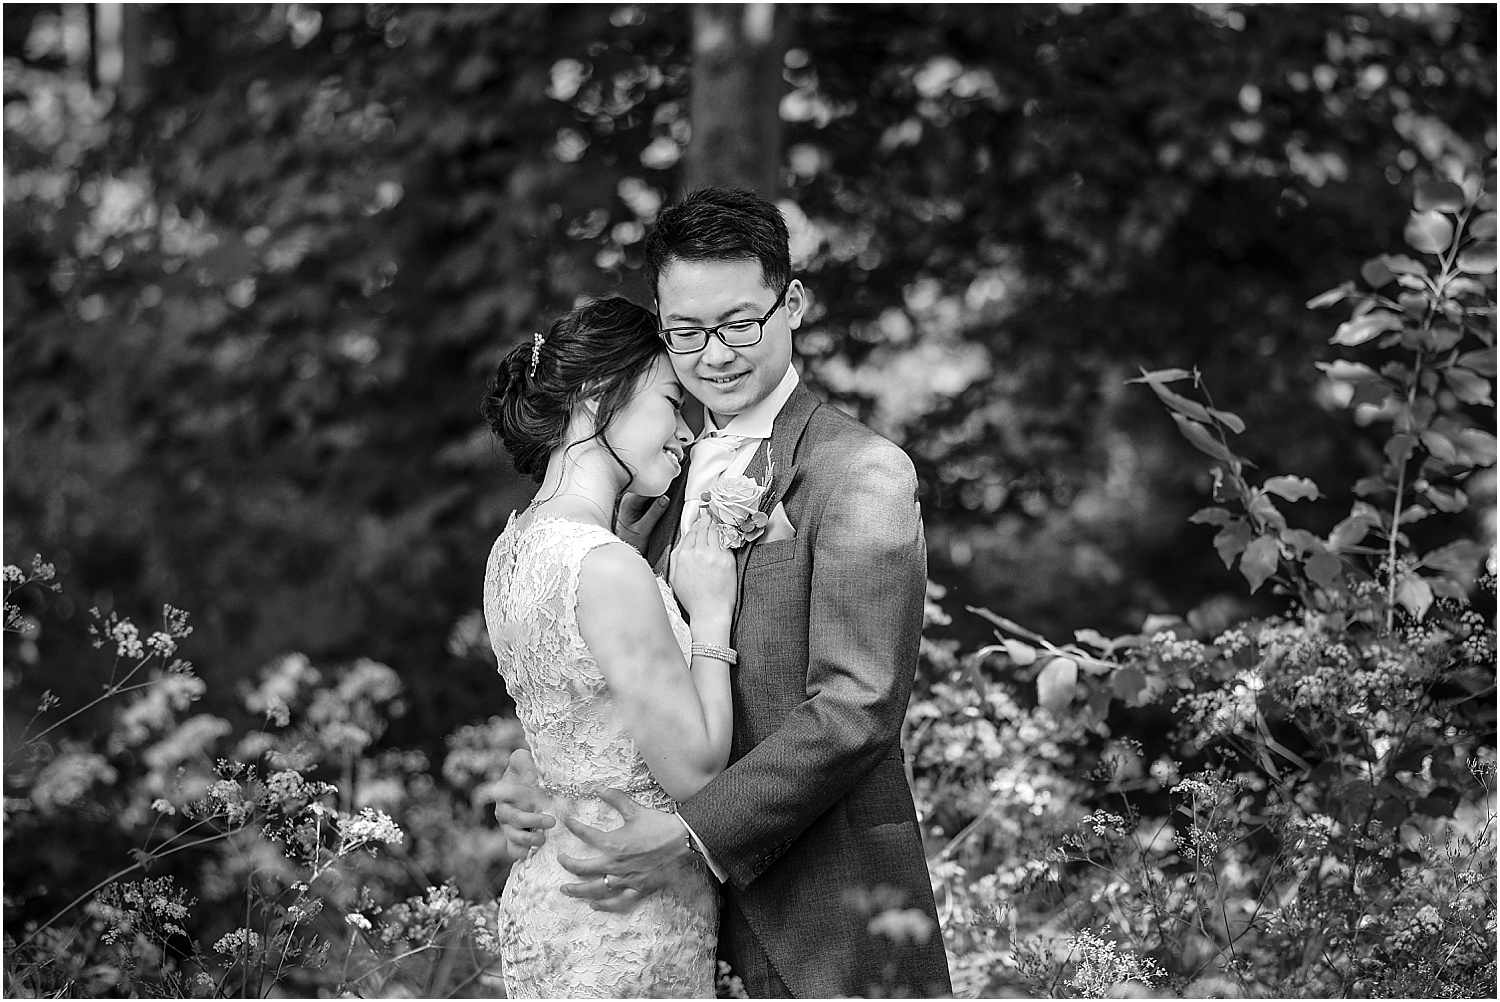 Matfen Hall wedding photographer